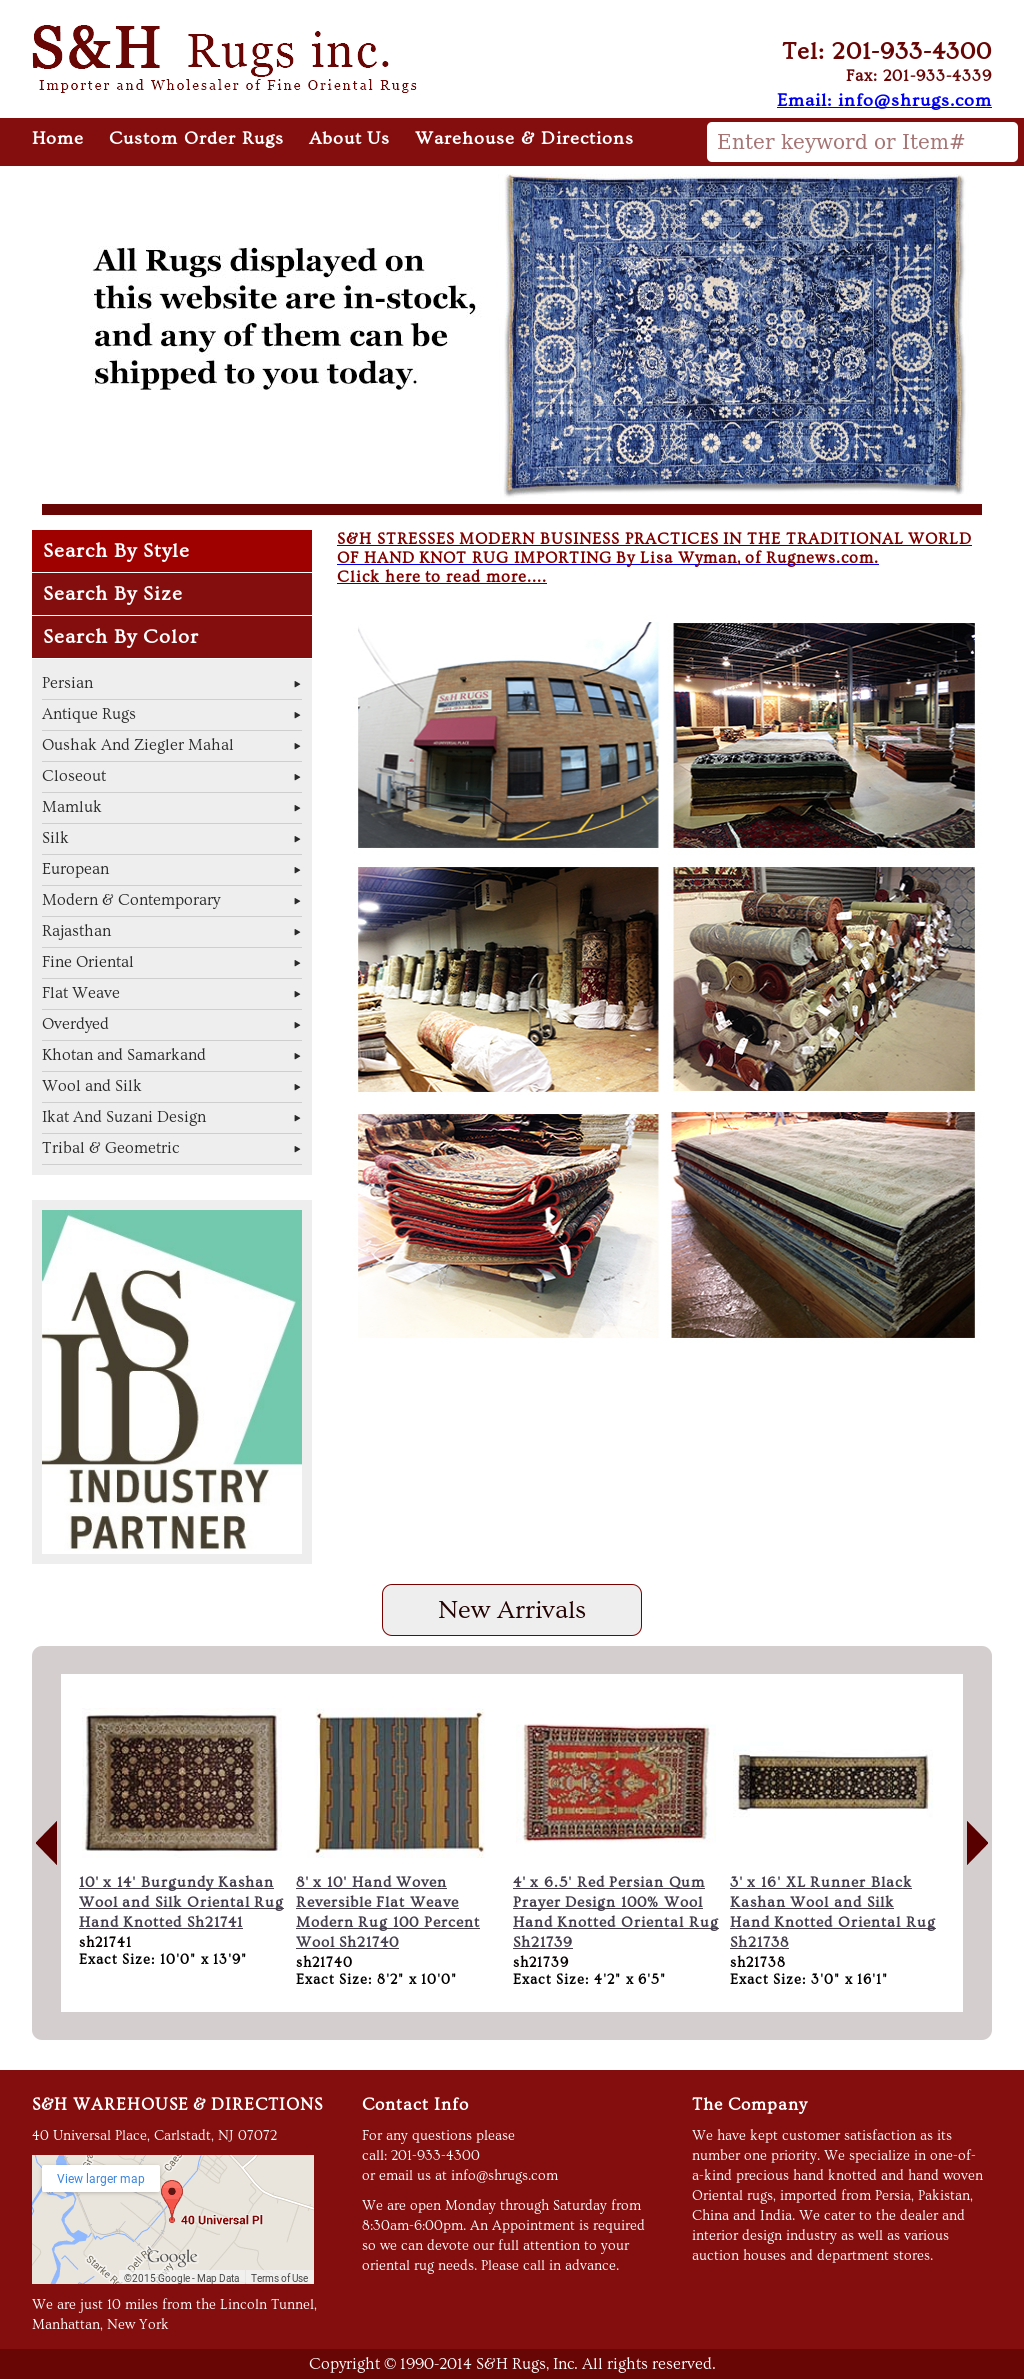 S&H Rugs Competitors, Revenue and Employees - Owler Company Profile